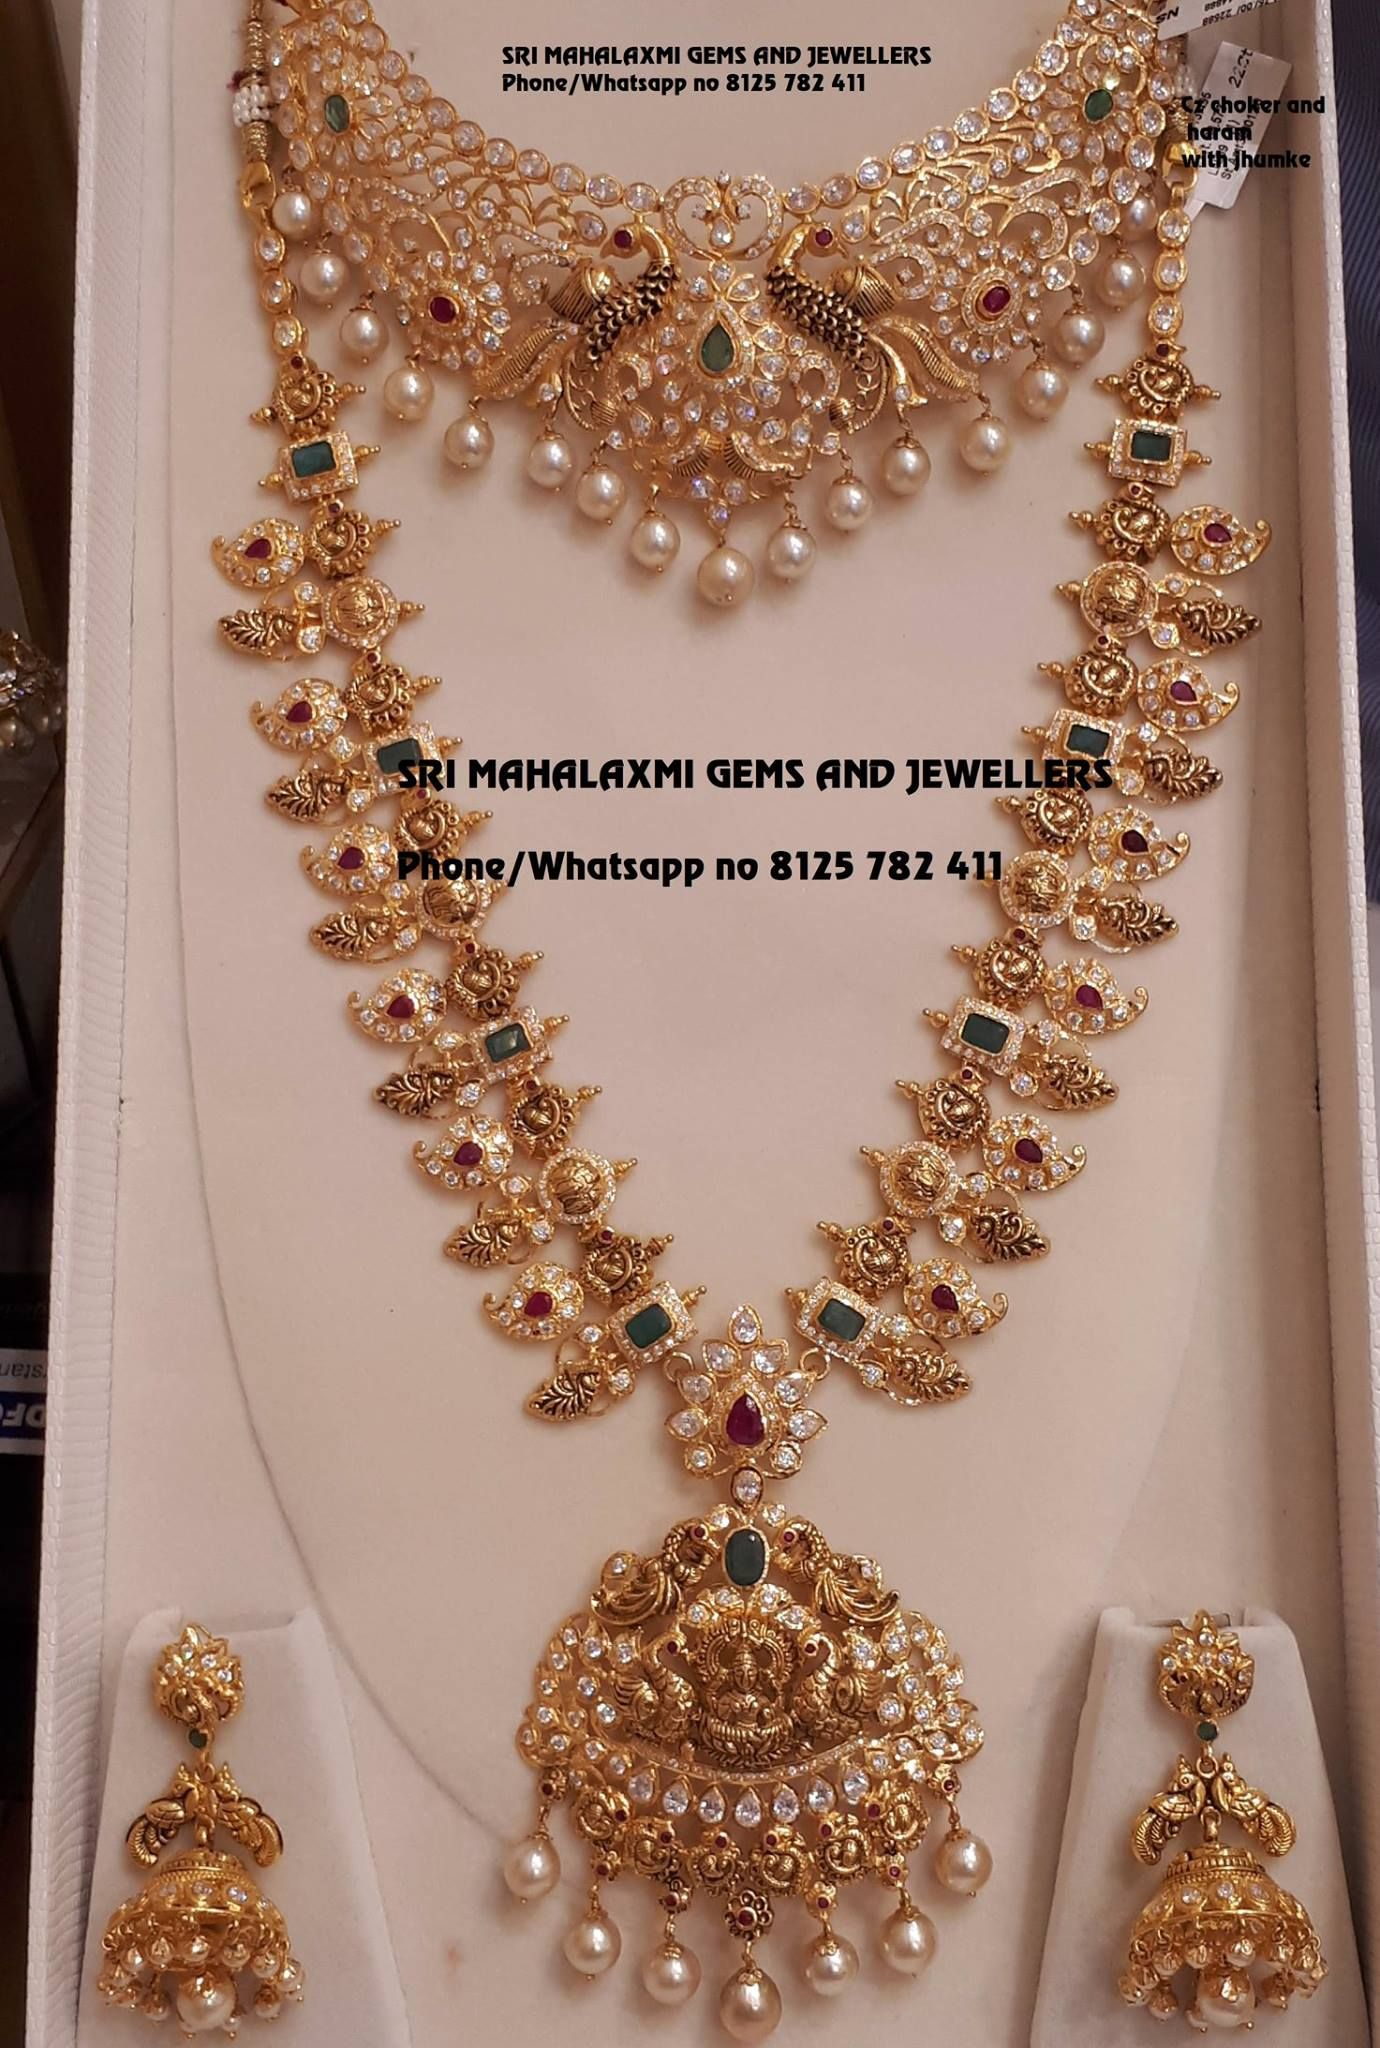 58a96b2b3c331b Bridal jewellery sets get best designs made in perfect finish. Presenting  Mango haram with Czs nakshi choker and Jhumke. Visit for excellent designs  at most ...